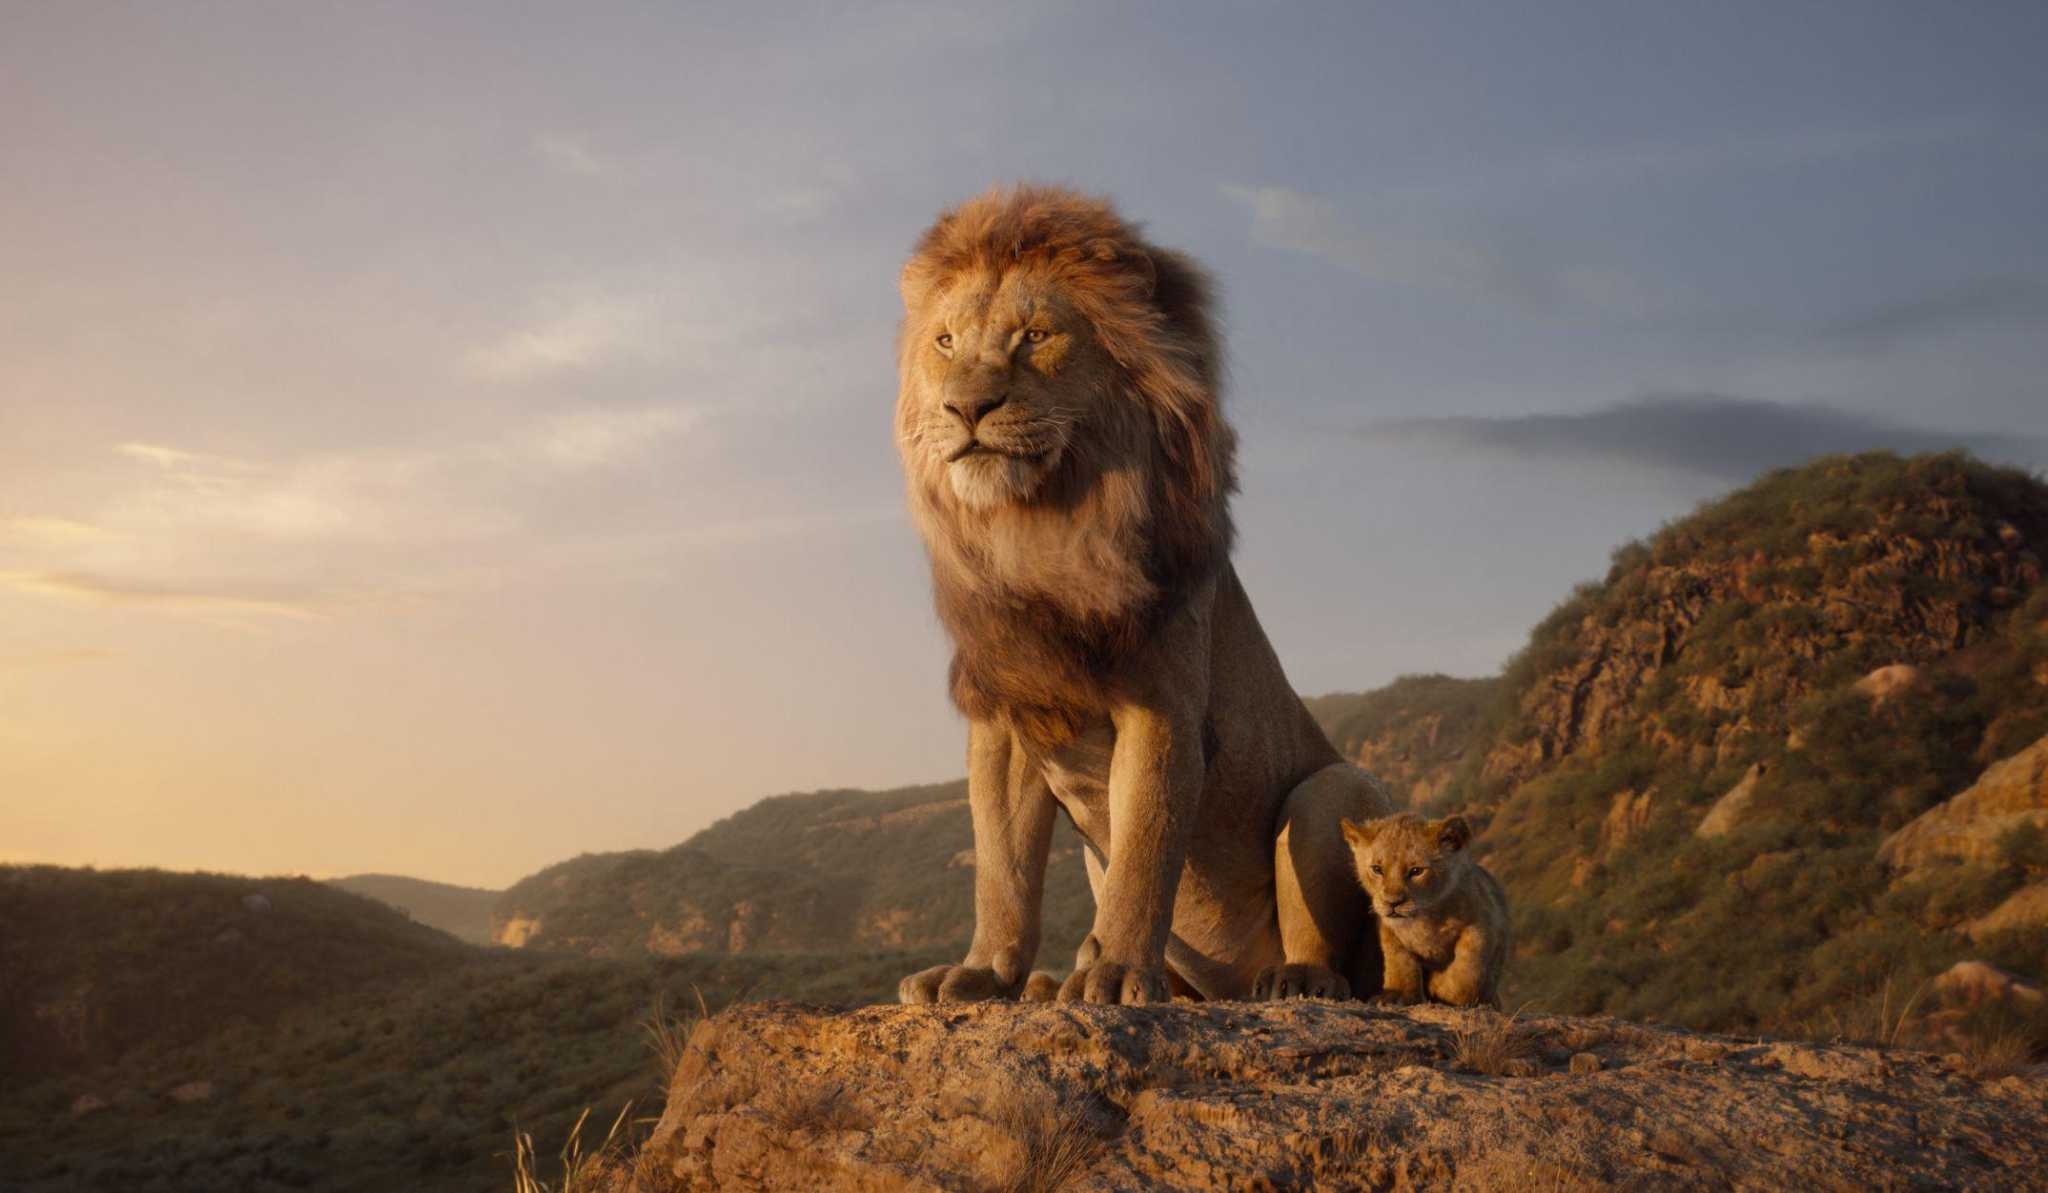 Weirded Out By That Cats Trailer And The Lion King You Re Not Alone Houstonchronicle Com